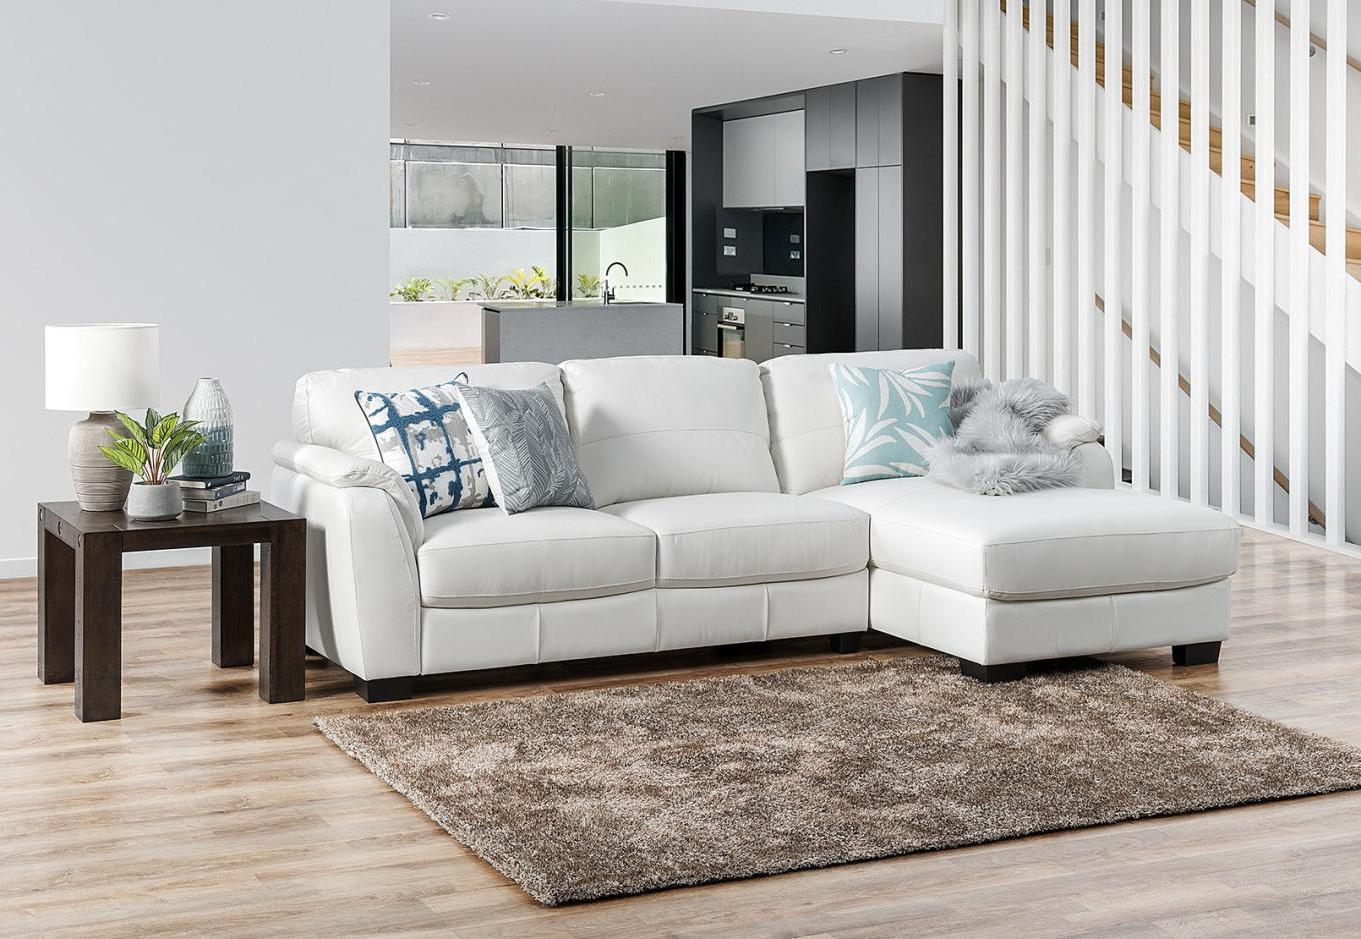 Marissa Leather 3 Seater Chaise White – Sofas, Lounges & Couches Regarding Widely Used Marissa Sofa Chairs (Gallery 10 of 20)